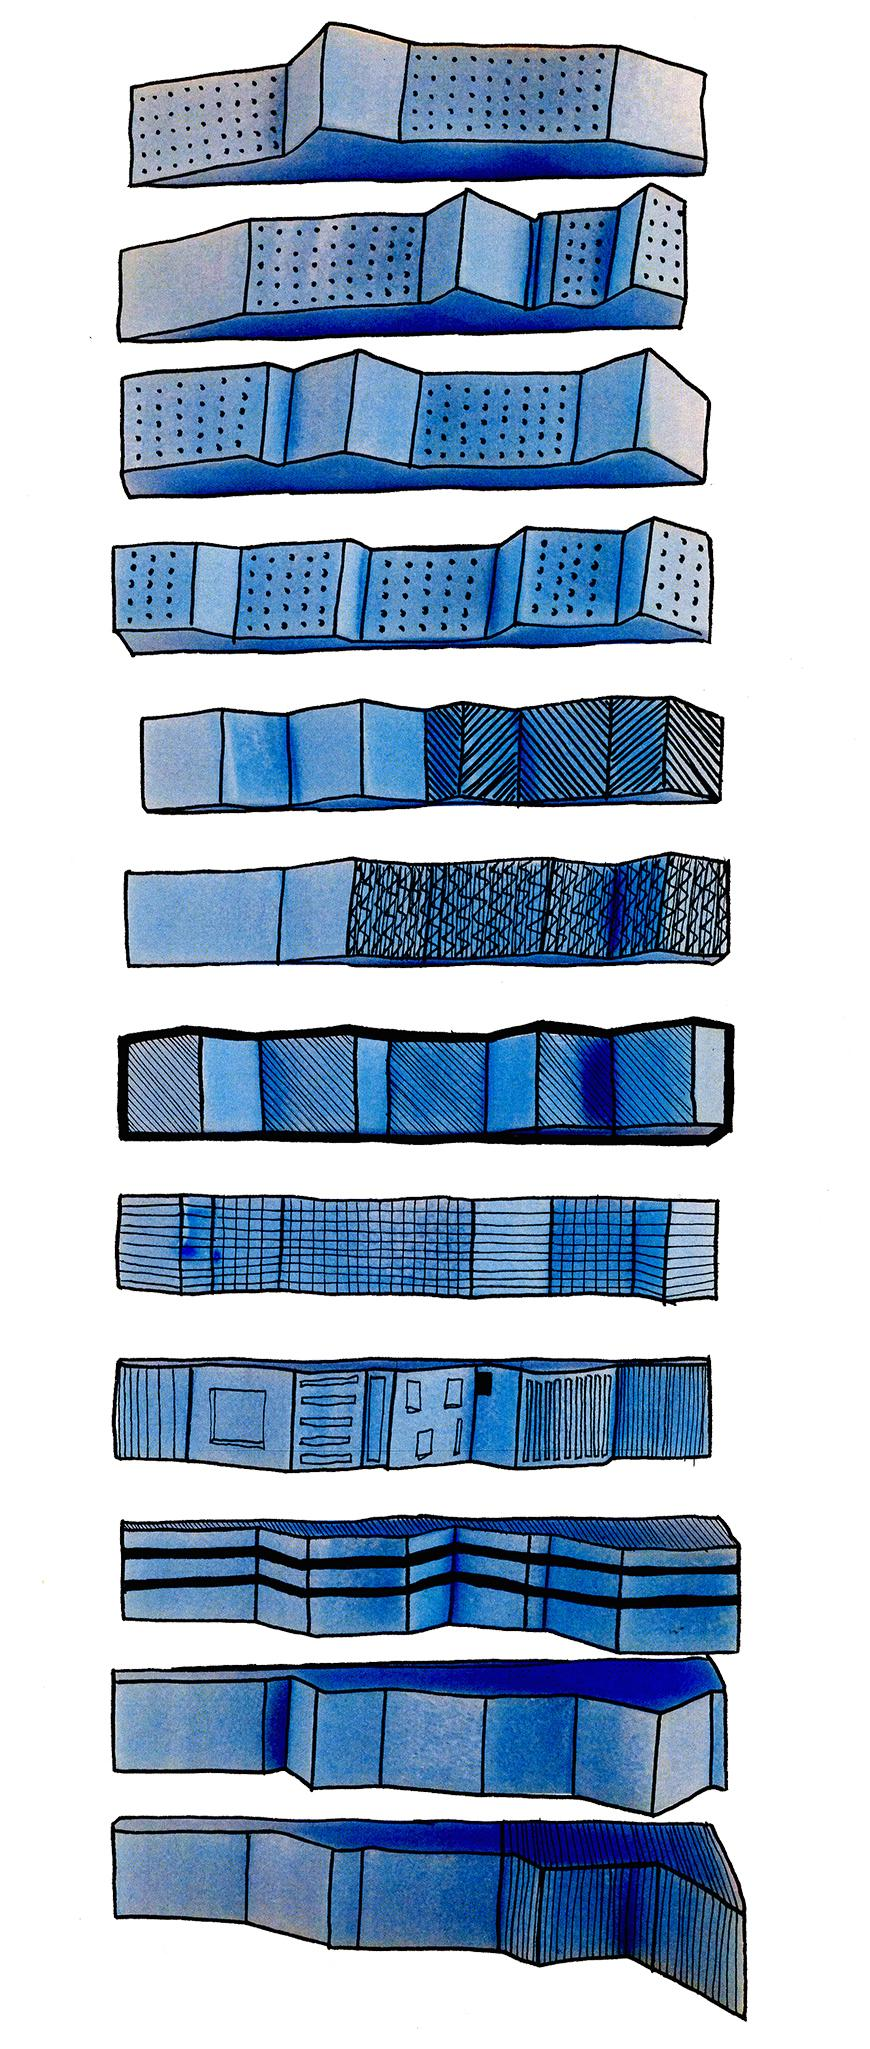 Diagrammatic drawing of banded volumes with different angular profiles, toned and shaded with blue watercolors, and with diferreent types of black markings over that to suggest different surface qualities.